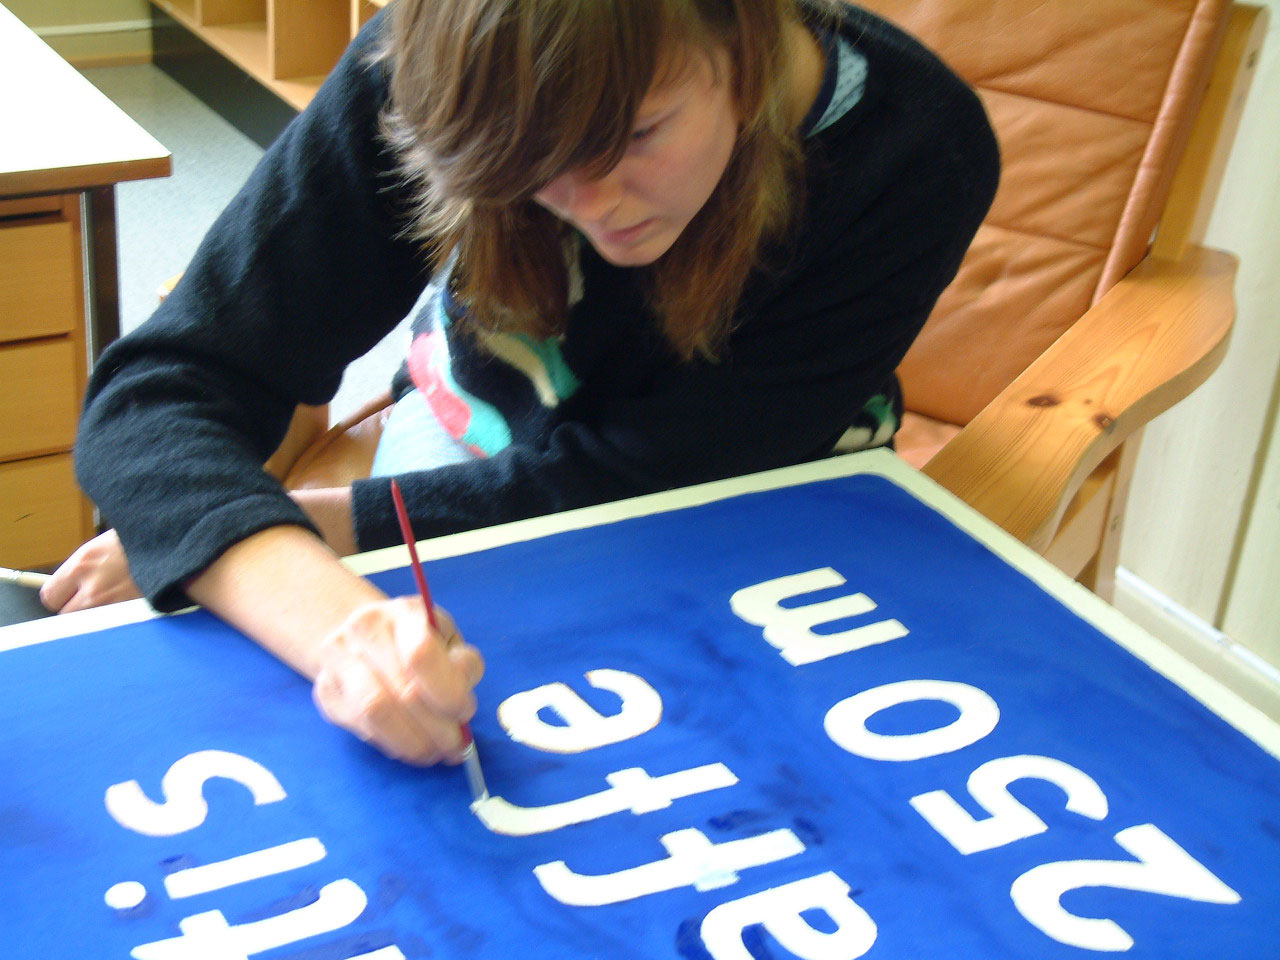 Gratis Kaffe 250m. Karolin from Rakett in the making of the free coffee sign, 2004.